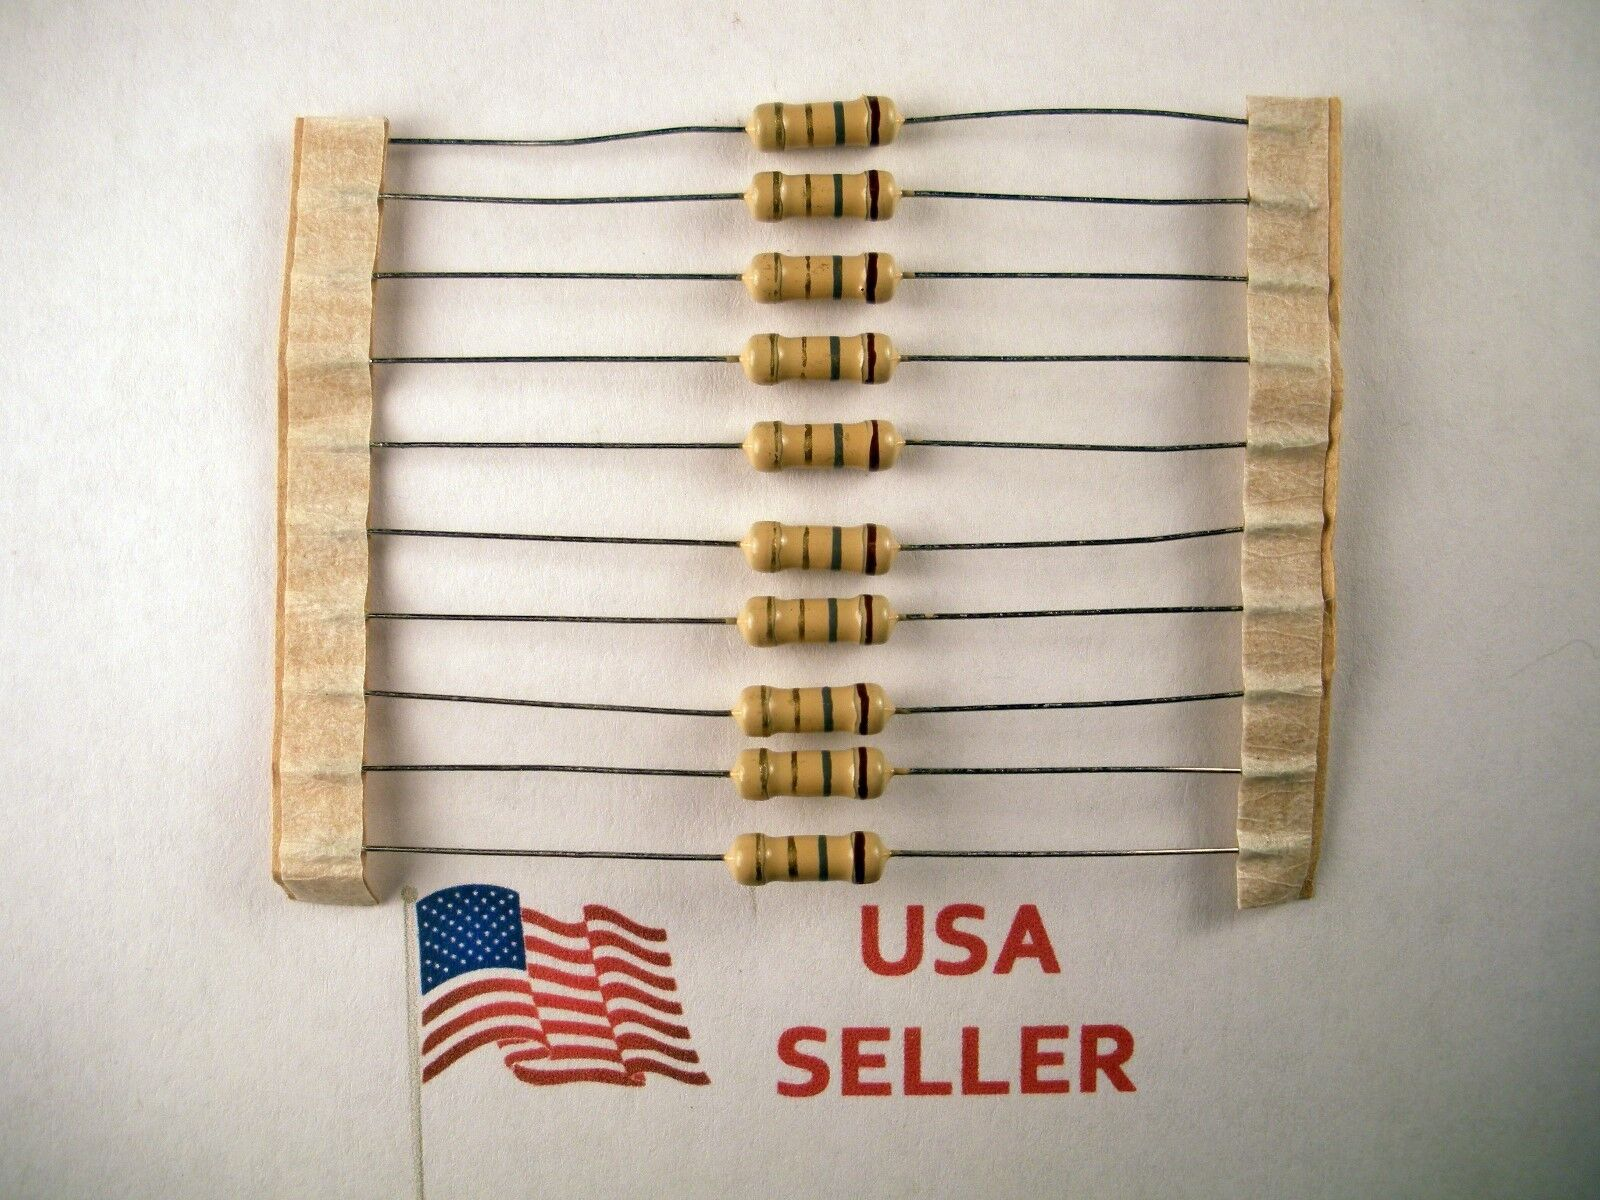 1/2W .5 Watt 5% Tolerance Carbon Film Resistor (10 Pieces) USA SELLER